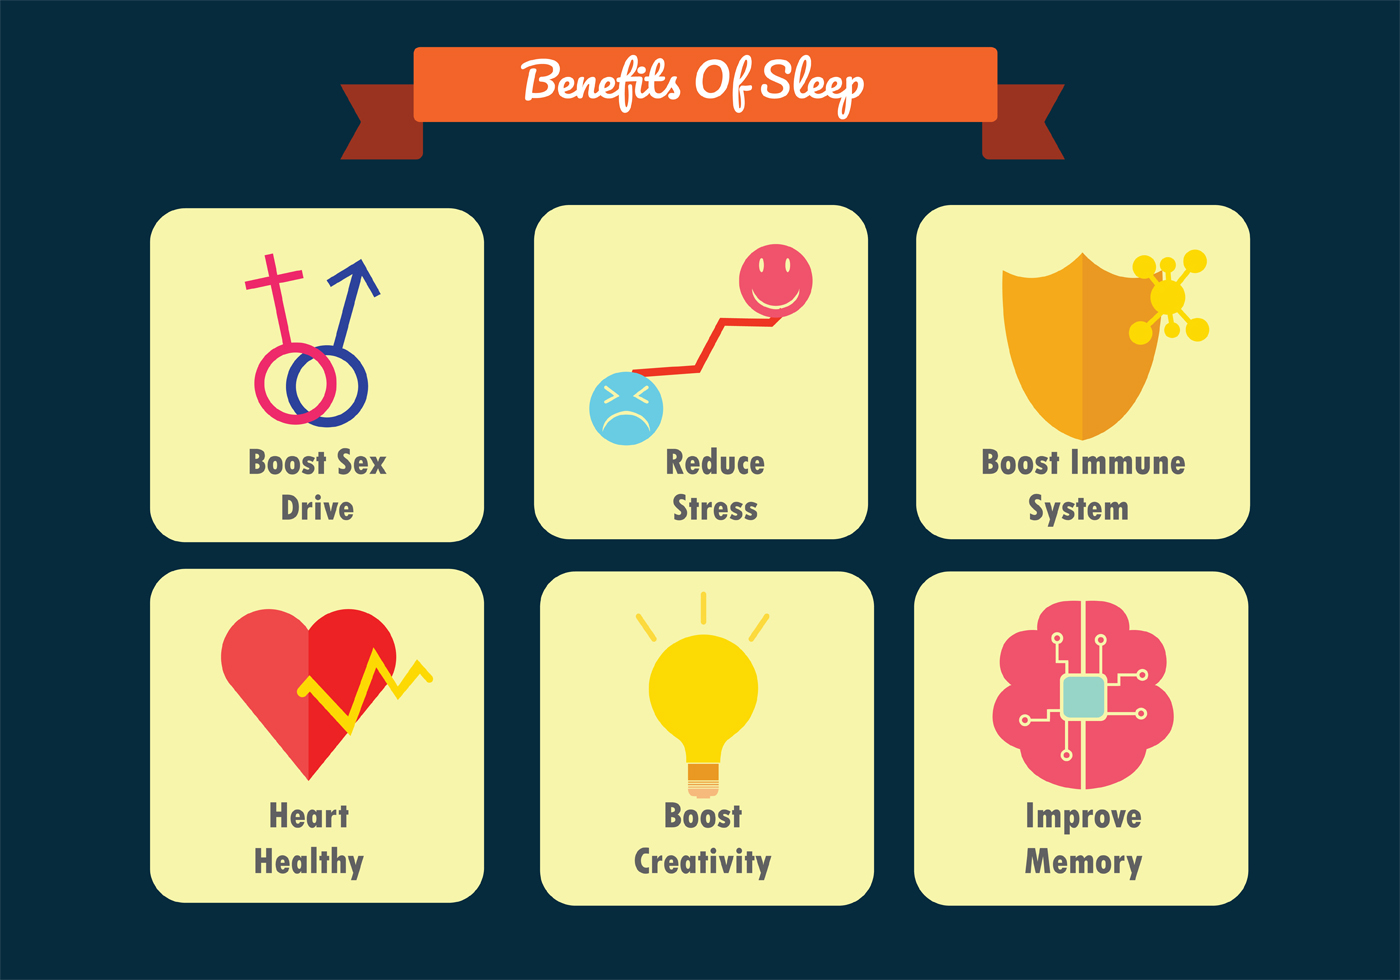 benefits of sleep 23 incredible benefits of getting more sleep kevin loria  sleep troubles caused by sleep apnea and insomnia cost the us billions of dollars in direct medical costs every year, and that's even .